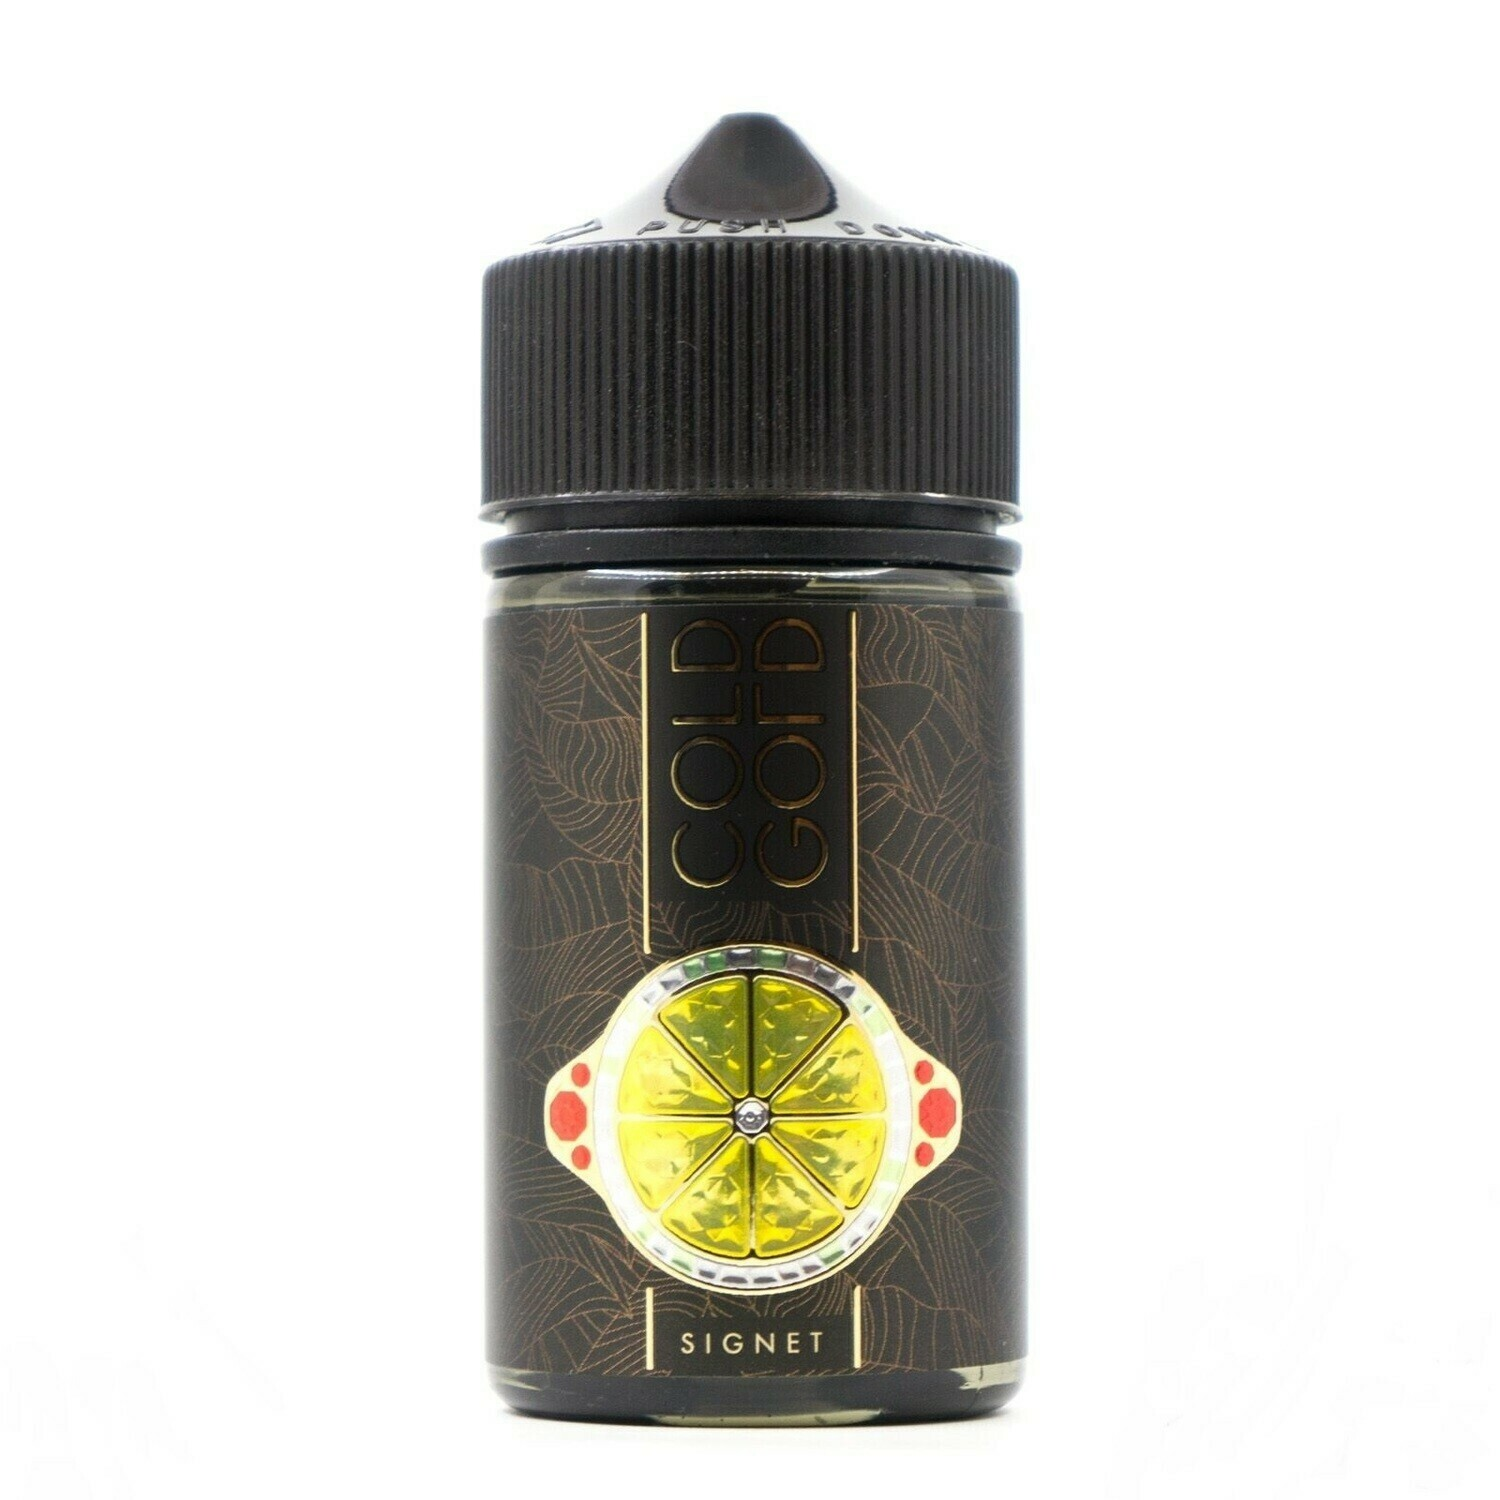 COLD GOLD BY ДЯДЯ ВОВА: SIGNET 80ML